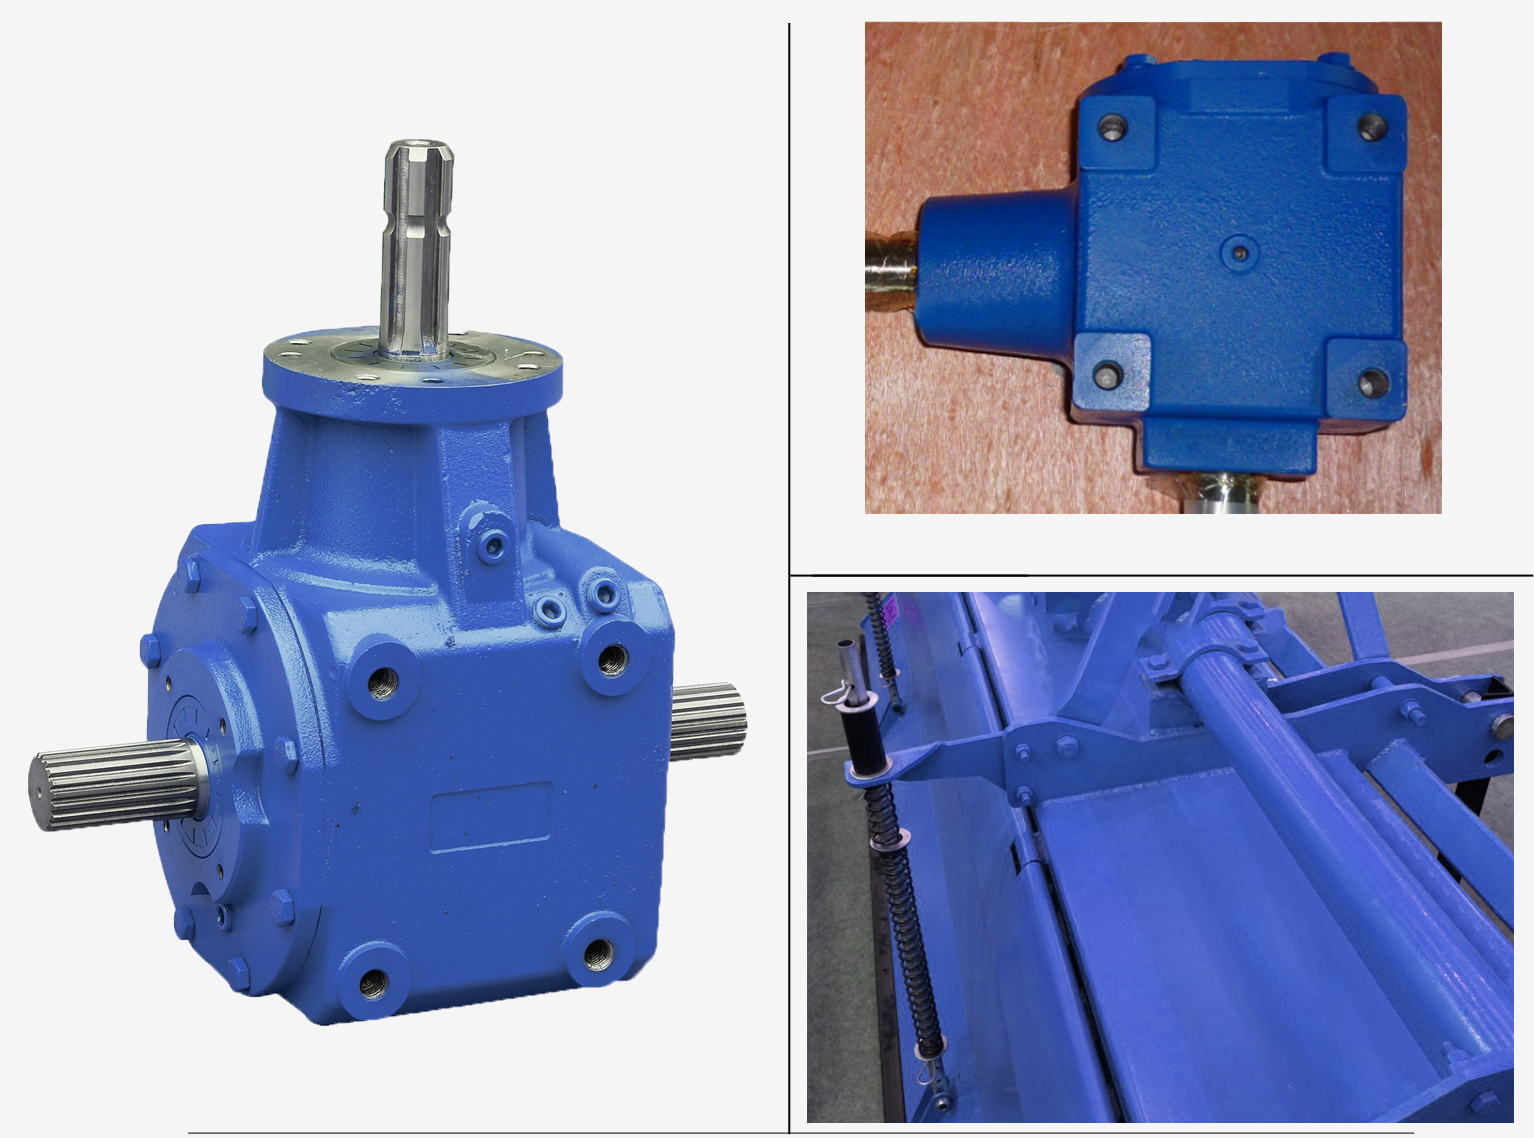 agricultural rotary tiller gearbox